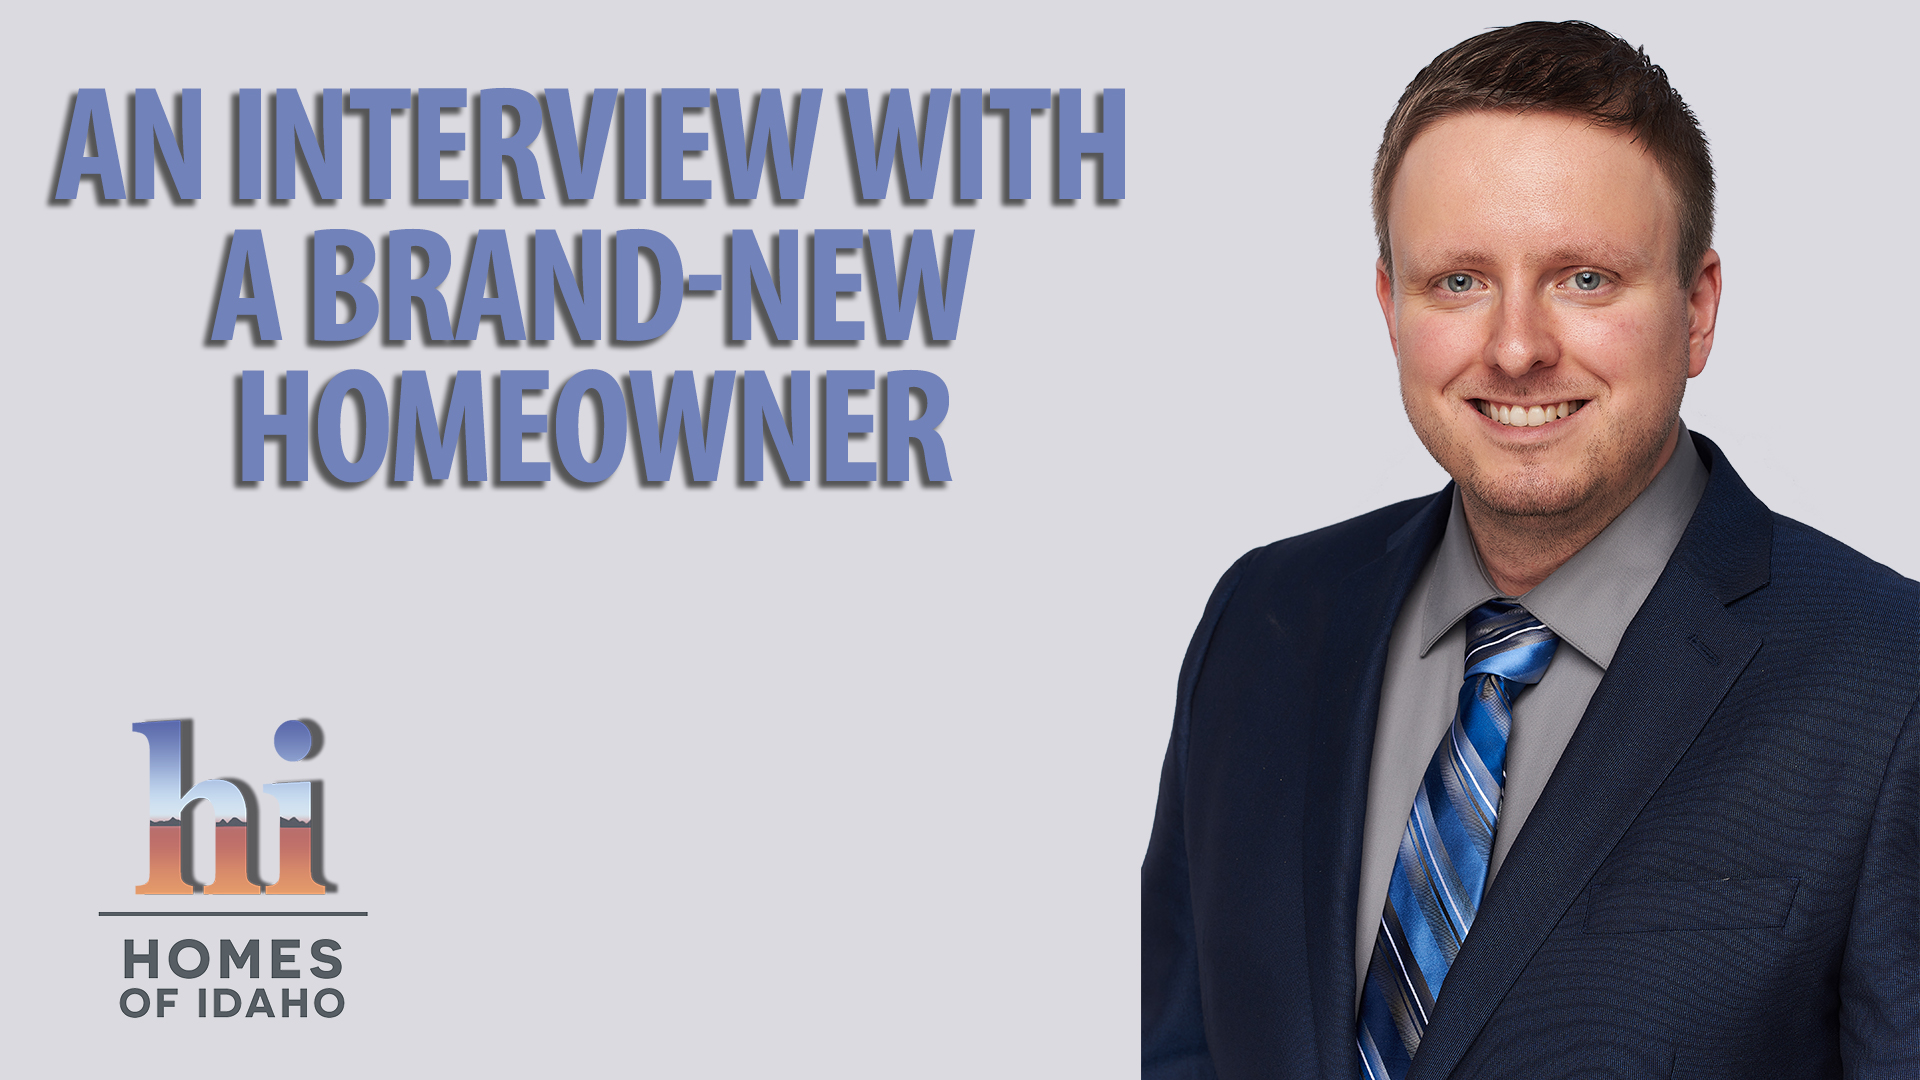 Interview with a Brand-New Homeowner